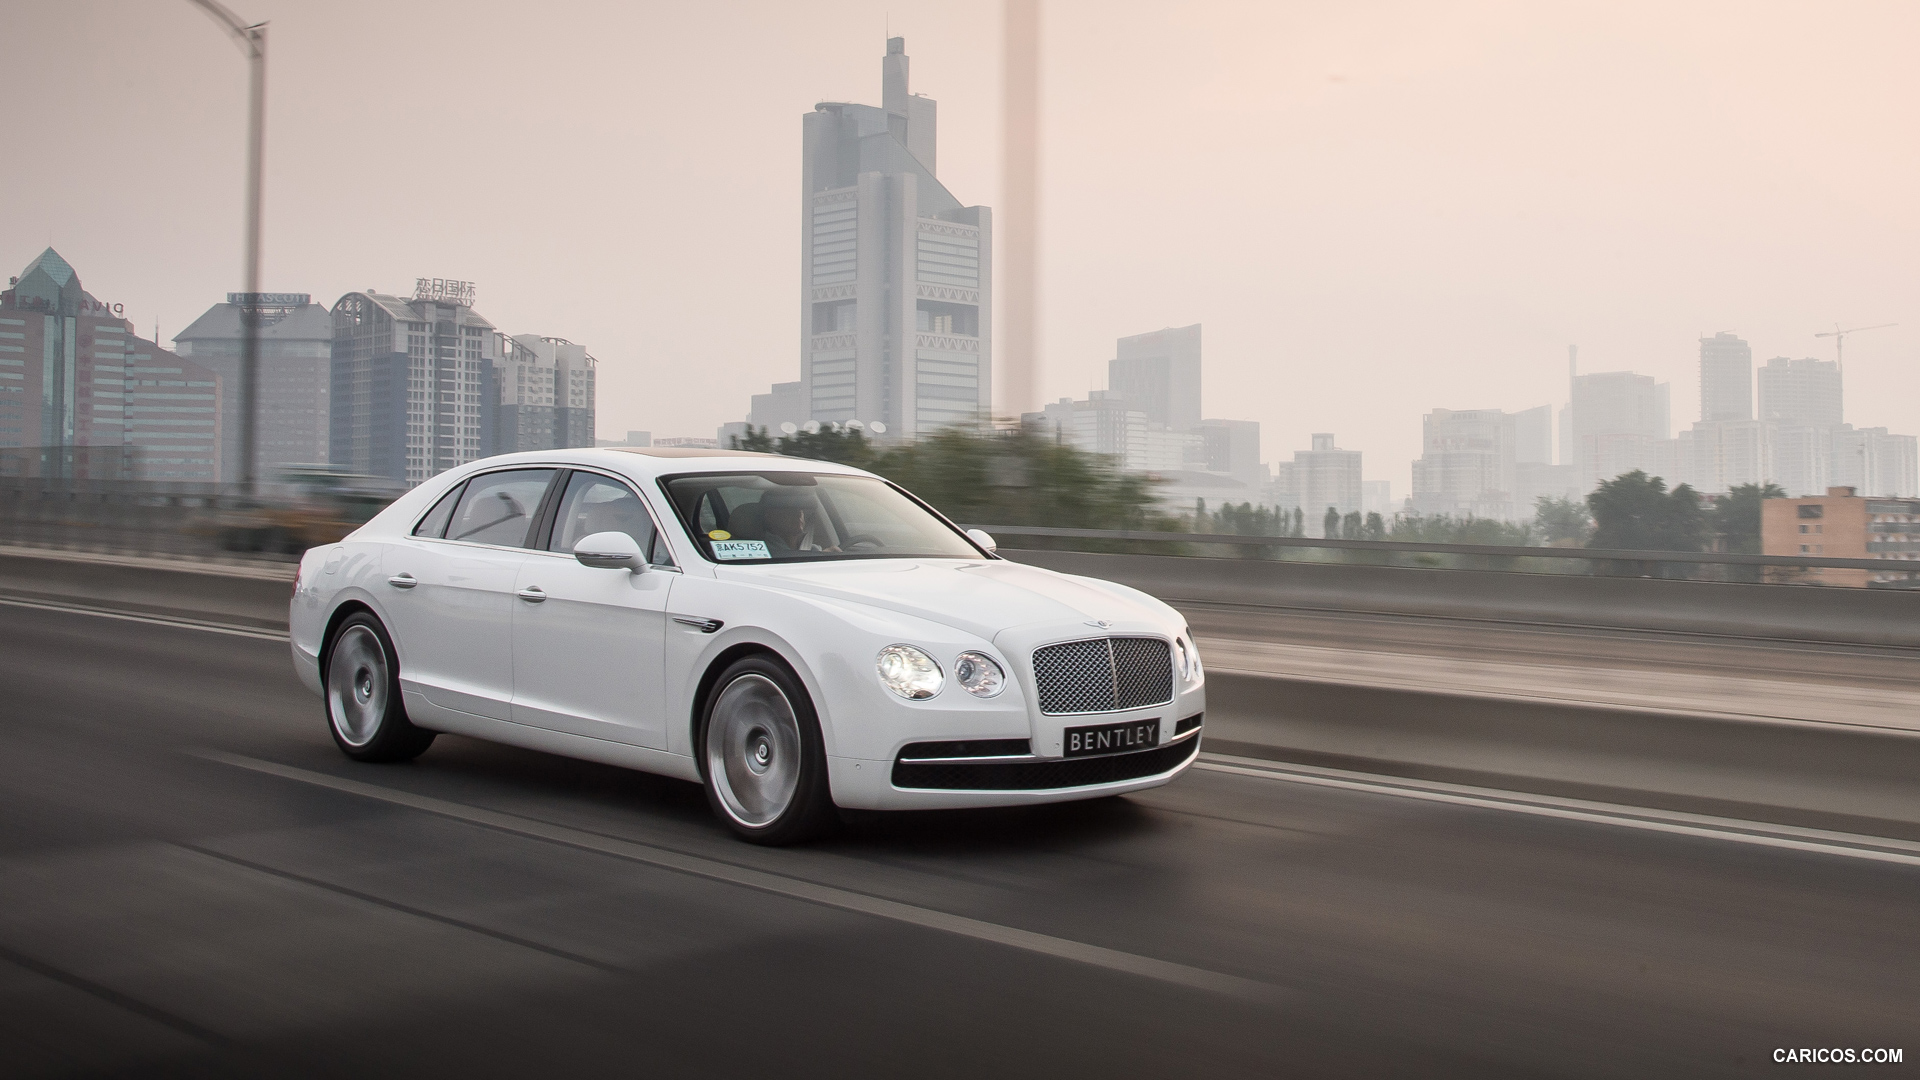 2014 Bentley Flying Spur Glacier White   Front HD Wallpaper 48 1920x1080